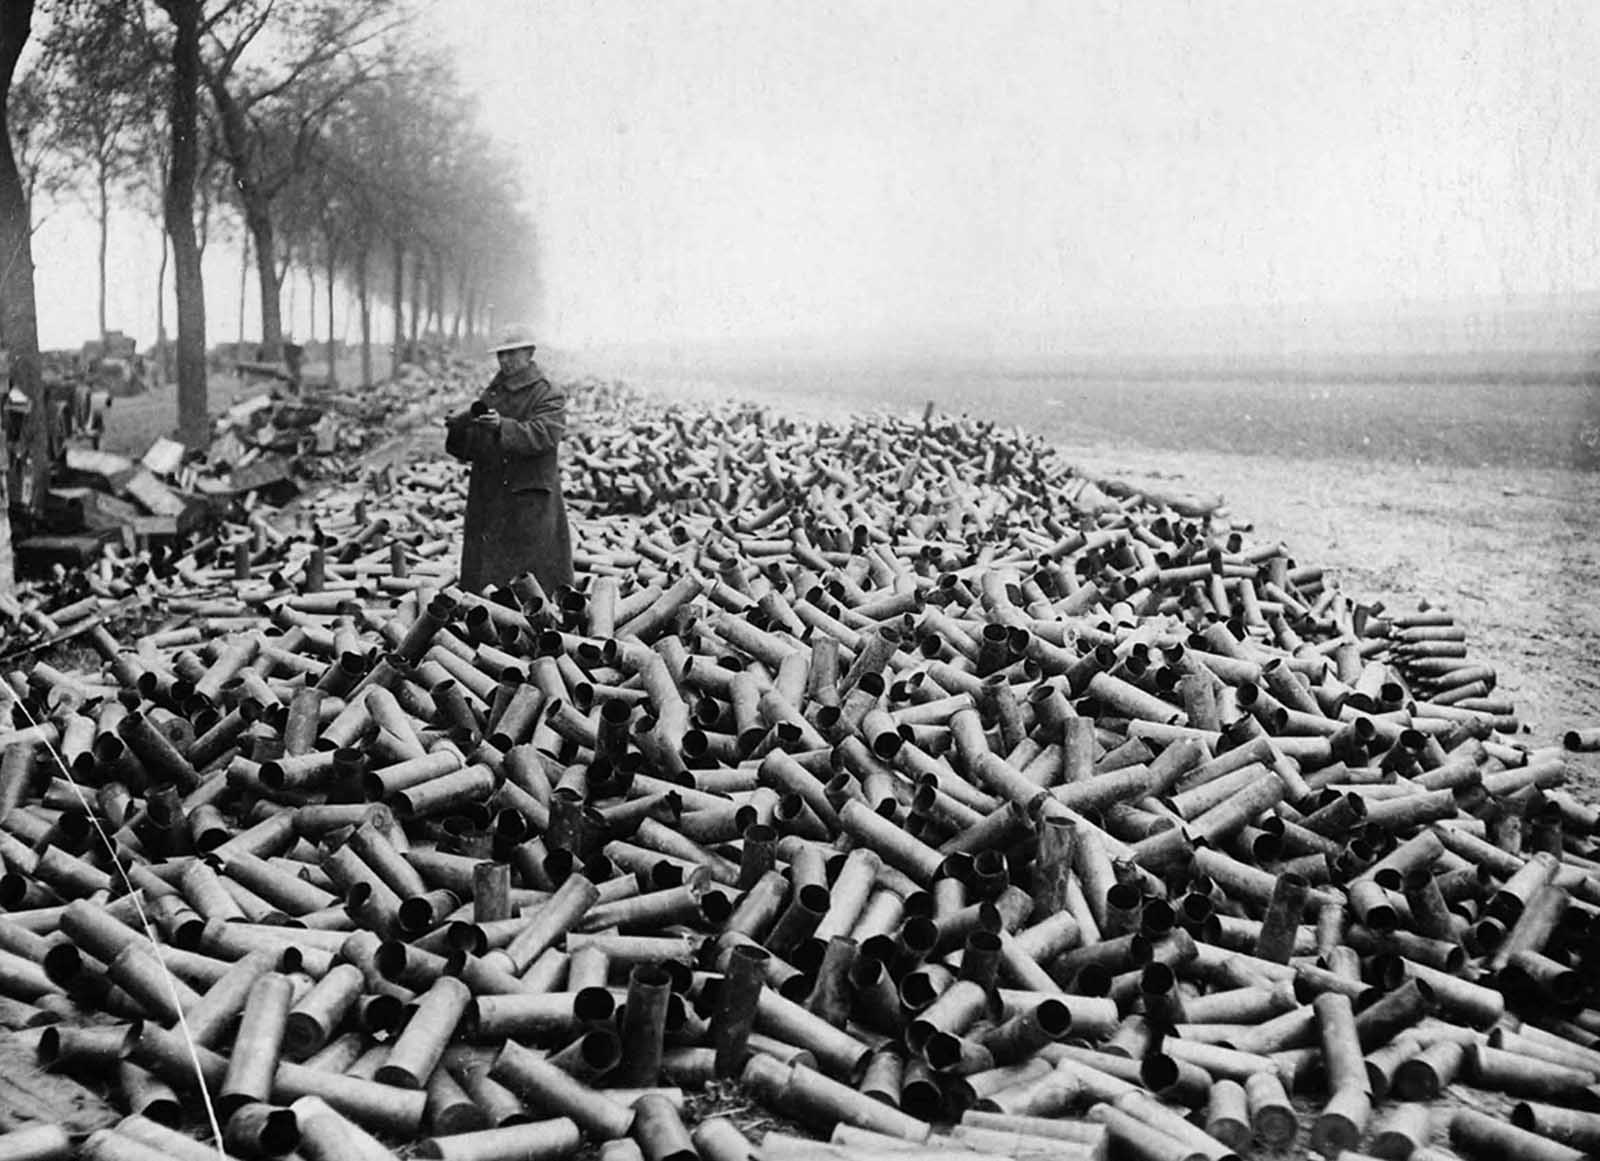 Mountains of shell cases on the roadside near the front lines, the contents of which had been fired into the German lines.